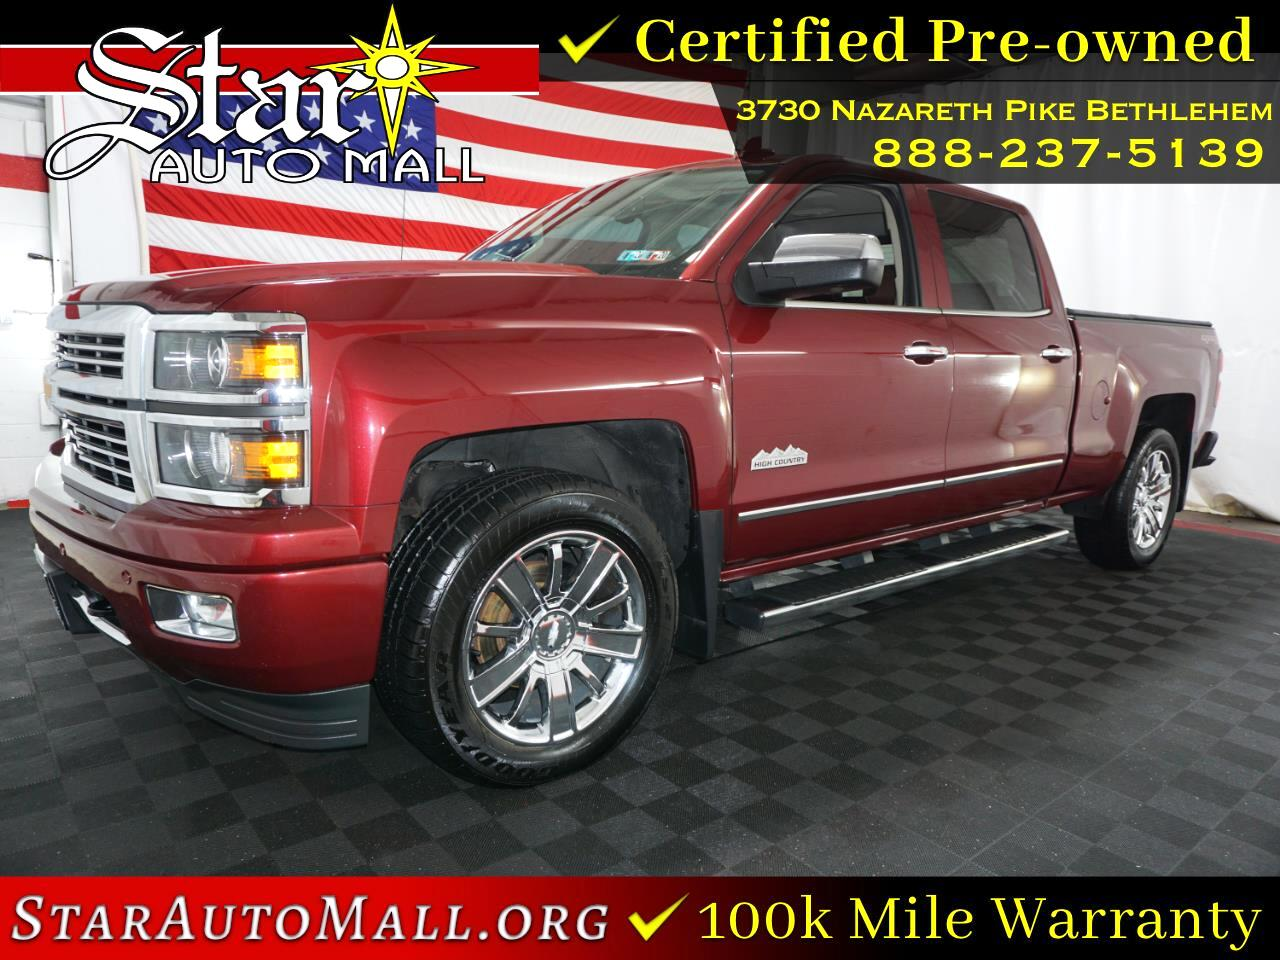 "Chevrolet Silverado 1500 4WD Crew Cab 153.0"" High Country 2015"